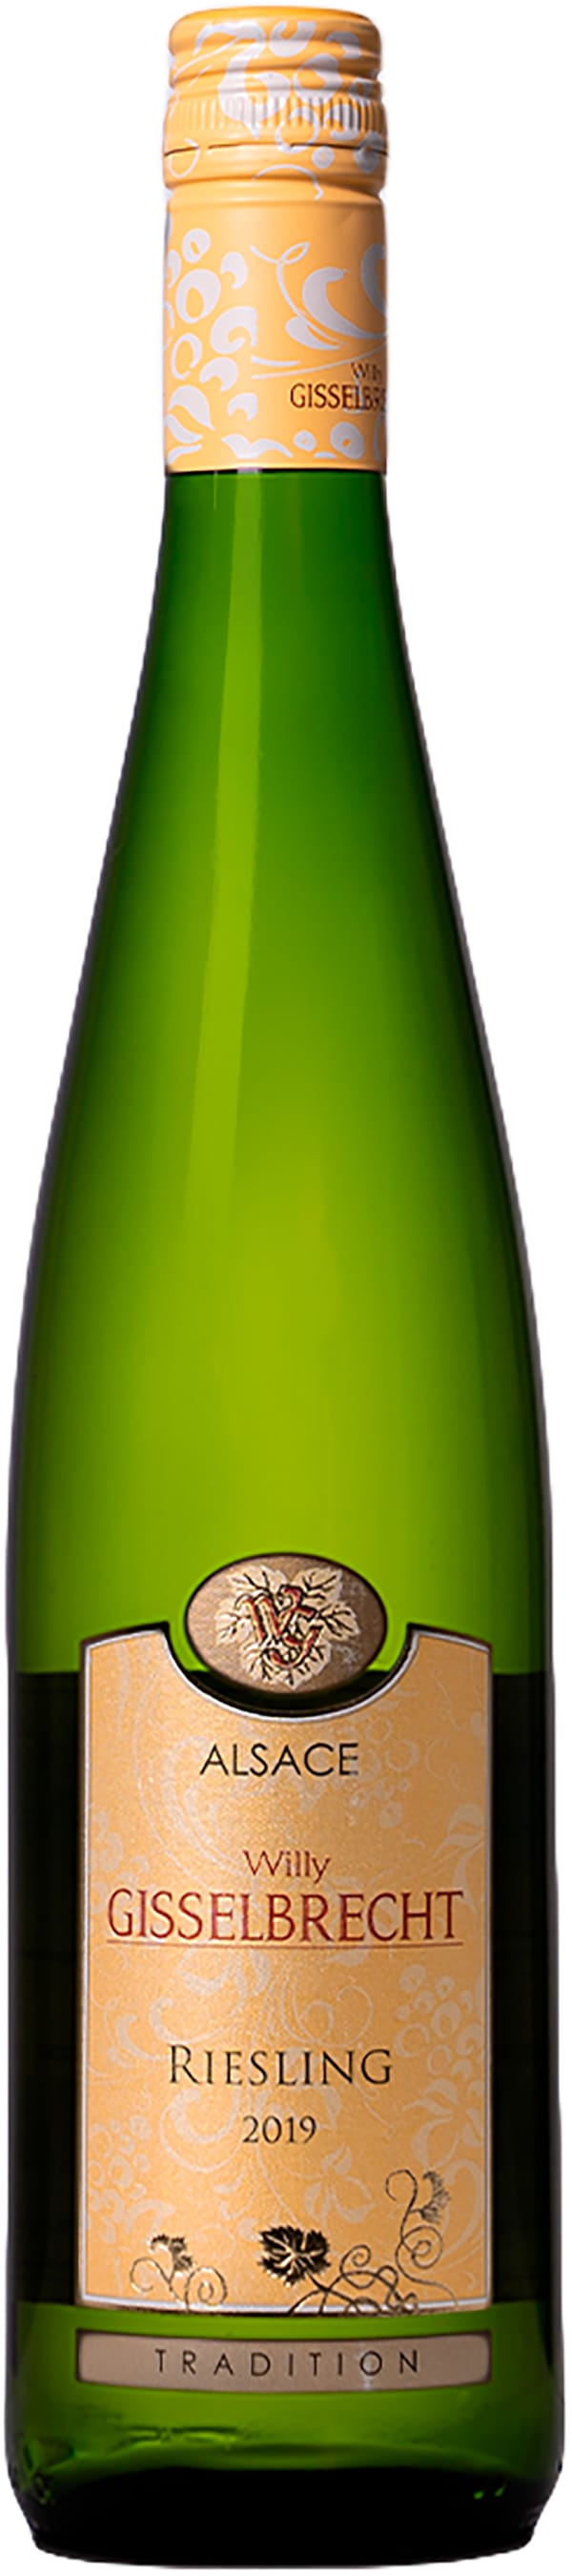 Gisselbrecht Riesling Tradition 2018